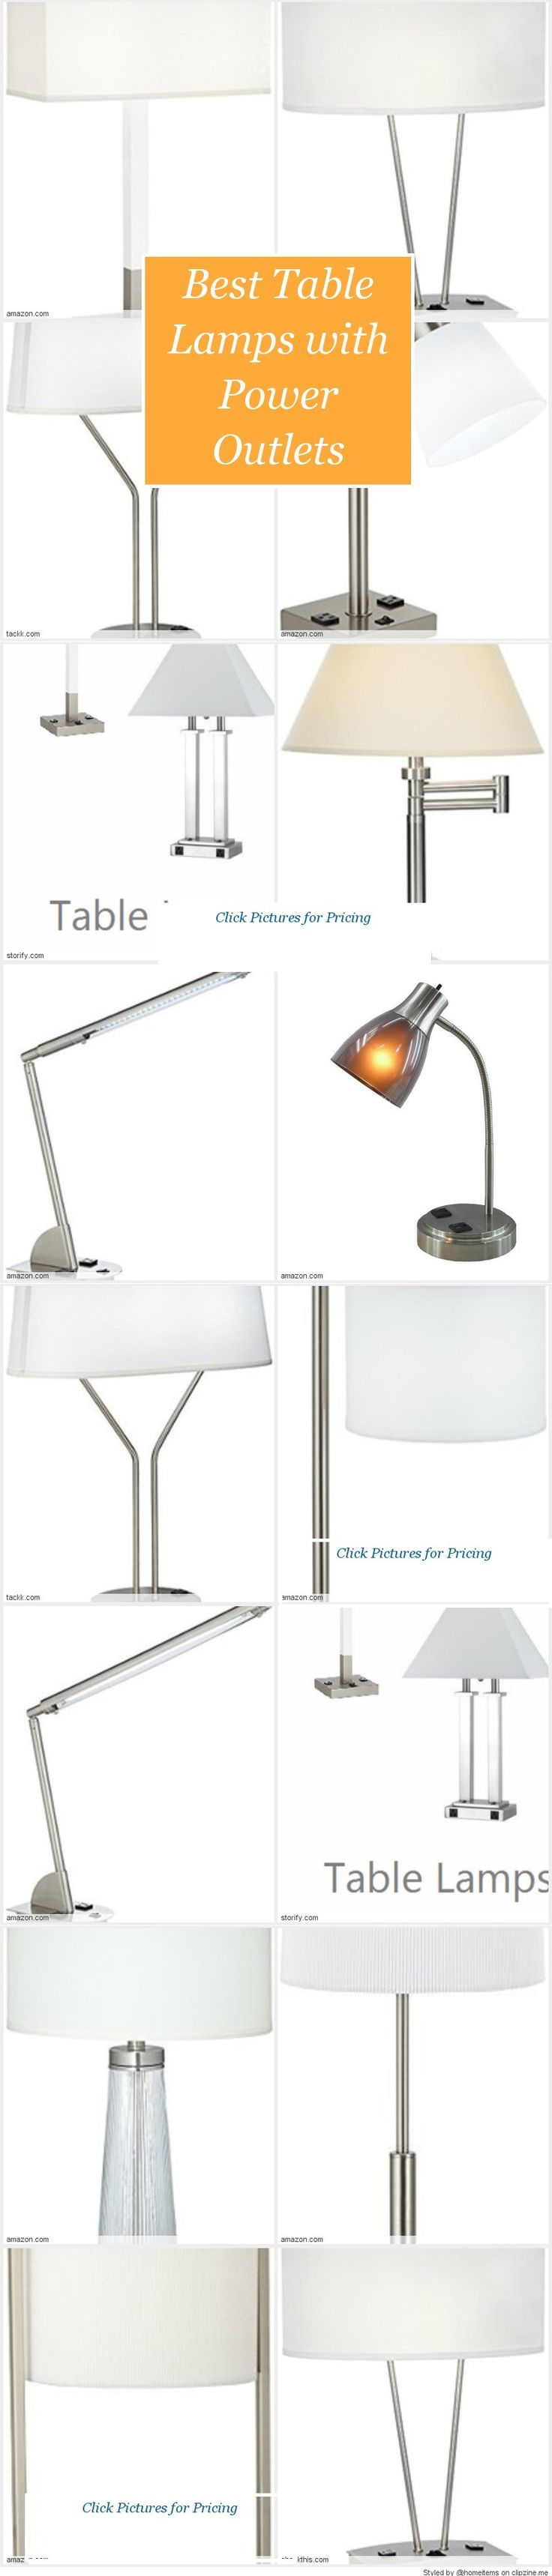 23 best table lamps with power outlets images on pinterest table best table lamps with power outlets top rated reviews geotapseo Choice Image